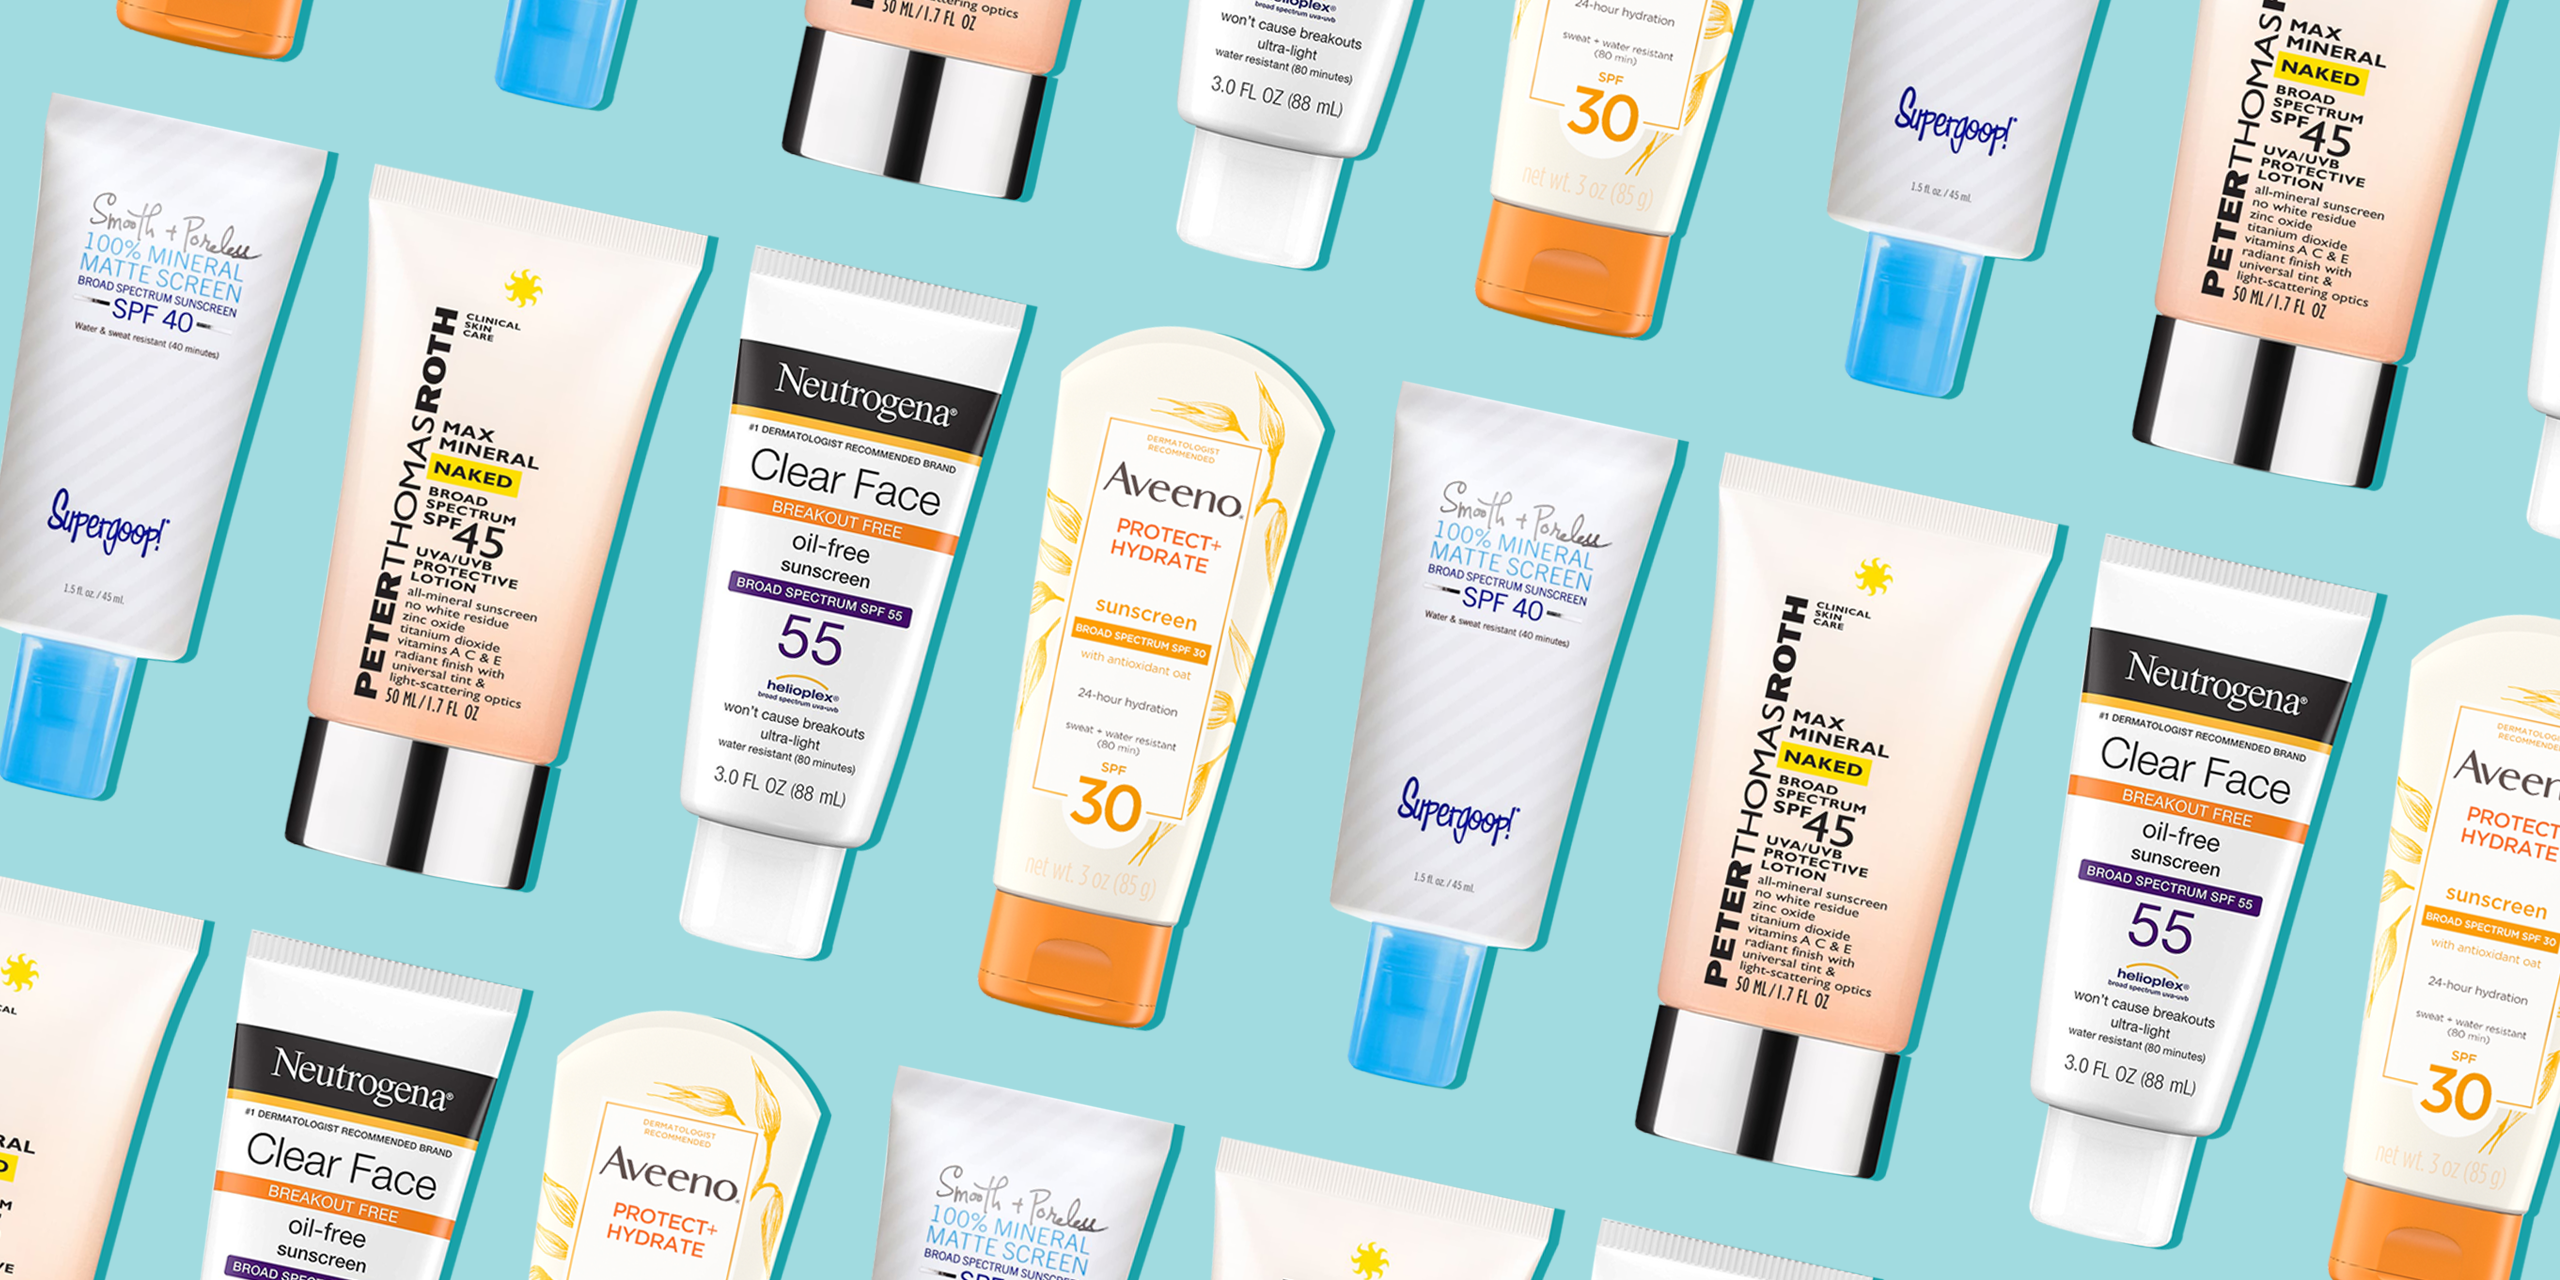 11 Best Sunscreens For Acne Prone Skin 2020 According To Dermatologists